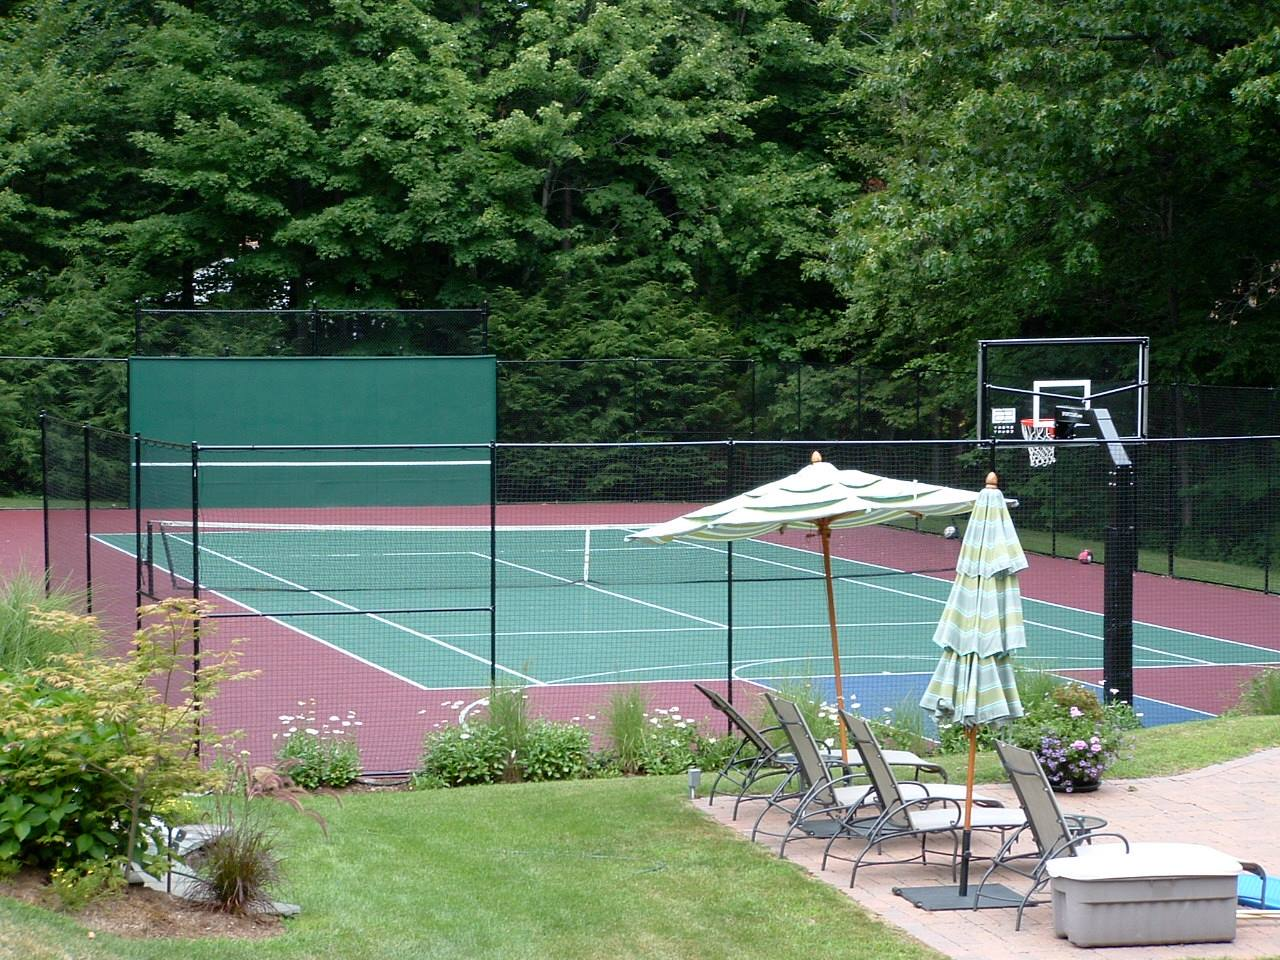 How to build a tennis court in your backyard 28 images for How to build a sport court